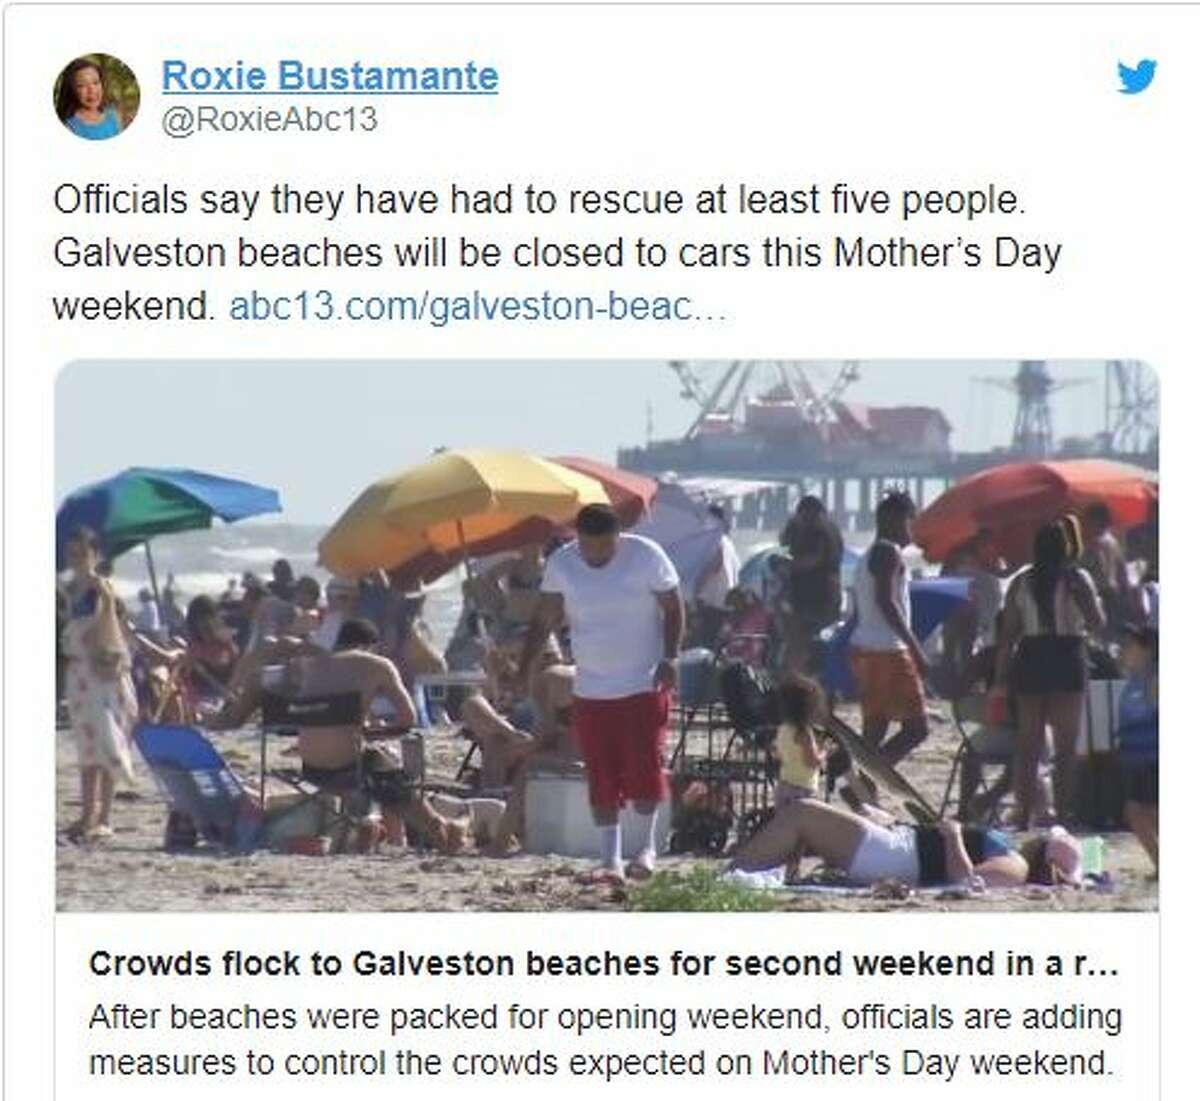 Crowds have flocked to Galveston beaches for a second weekend in a row, according to ABC-13's Roxie Bustamante.